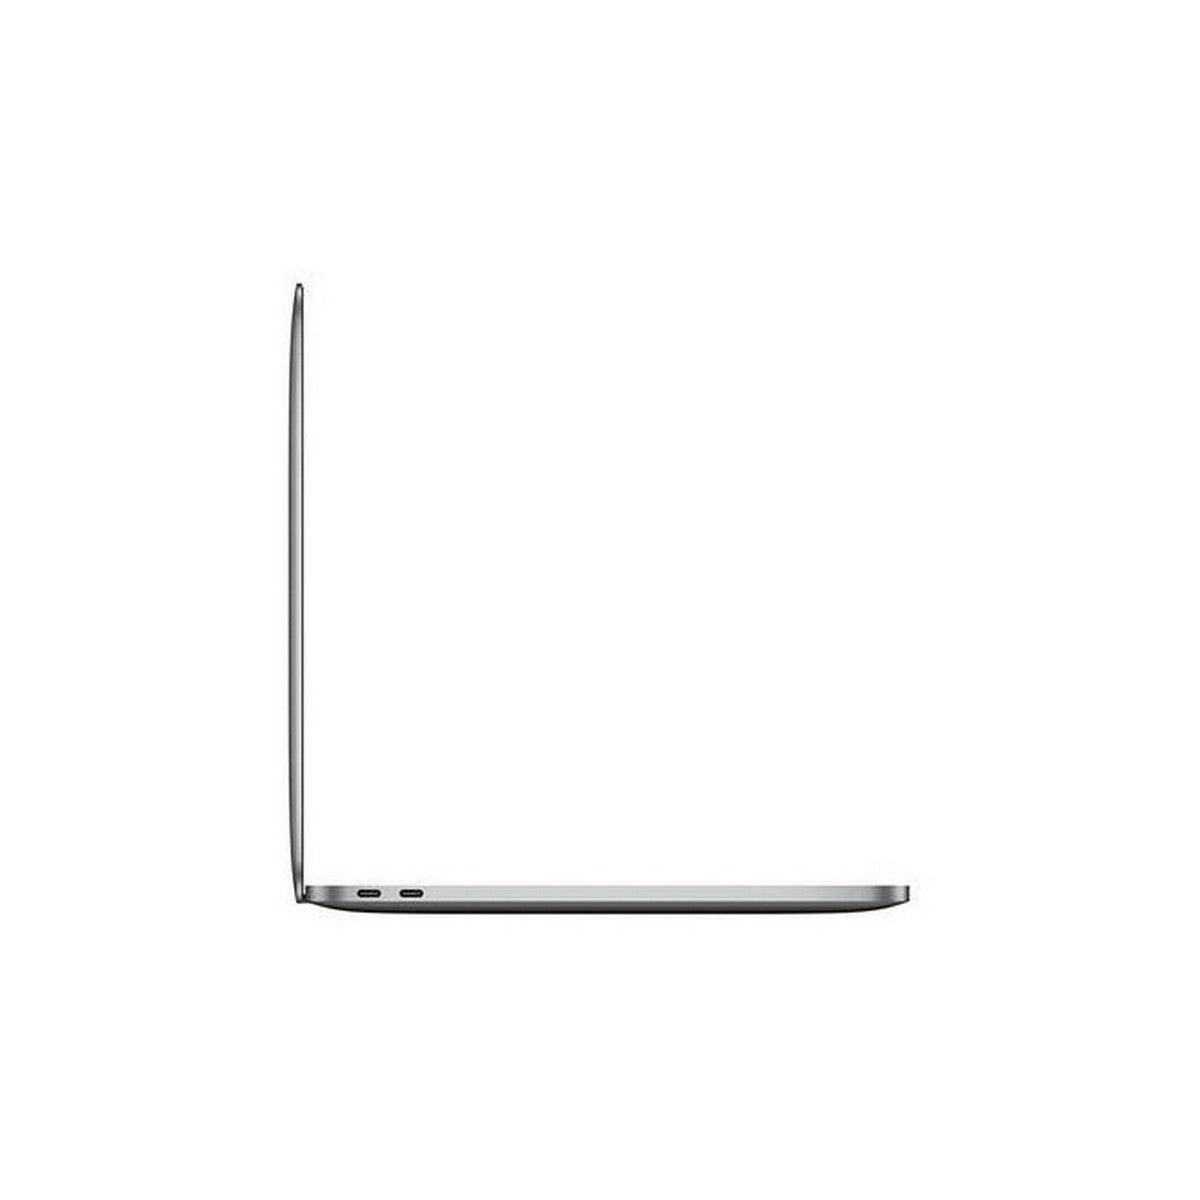 Apple MacBook Pro 13 With Touch Bar Laptop (Mid 2020) 13.3'' Retina display , Intel Core i5 1.4GHz Up To 3.9GHz, 8GB RAM, Intel Iris P645 GPU, 512GB SSD, Touch ID, Model:MXK72LL/A, MacOS, English Keyboard, Silver